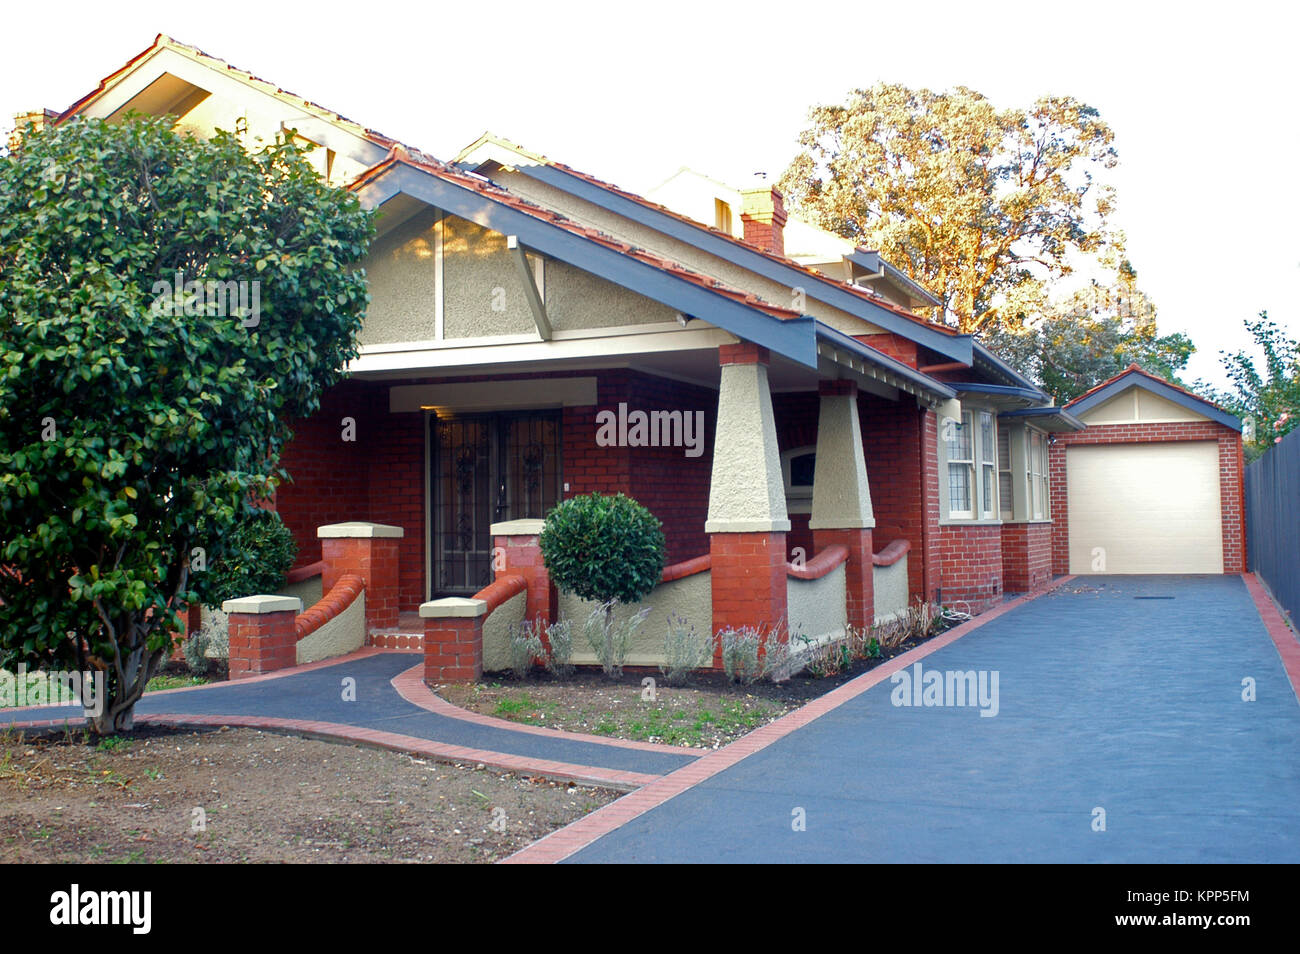 Cottage style property stock photos cottage style for Cottage style homes melbourne